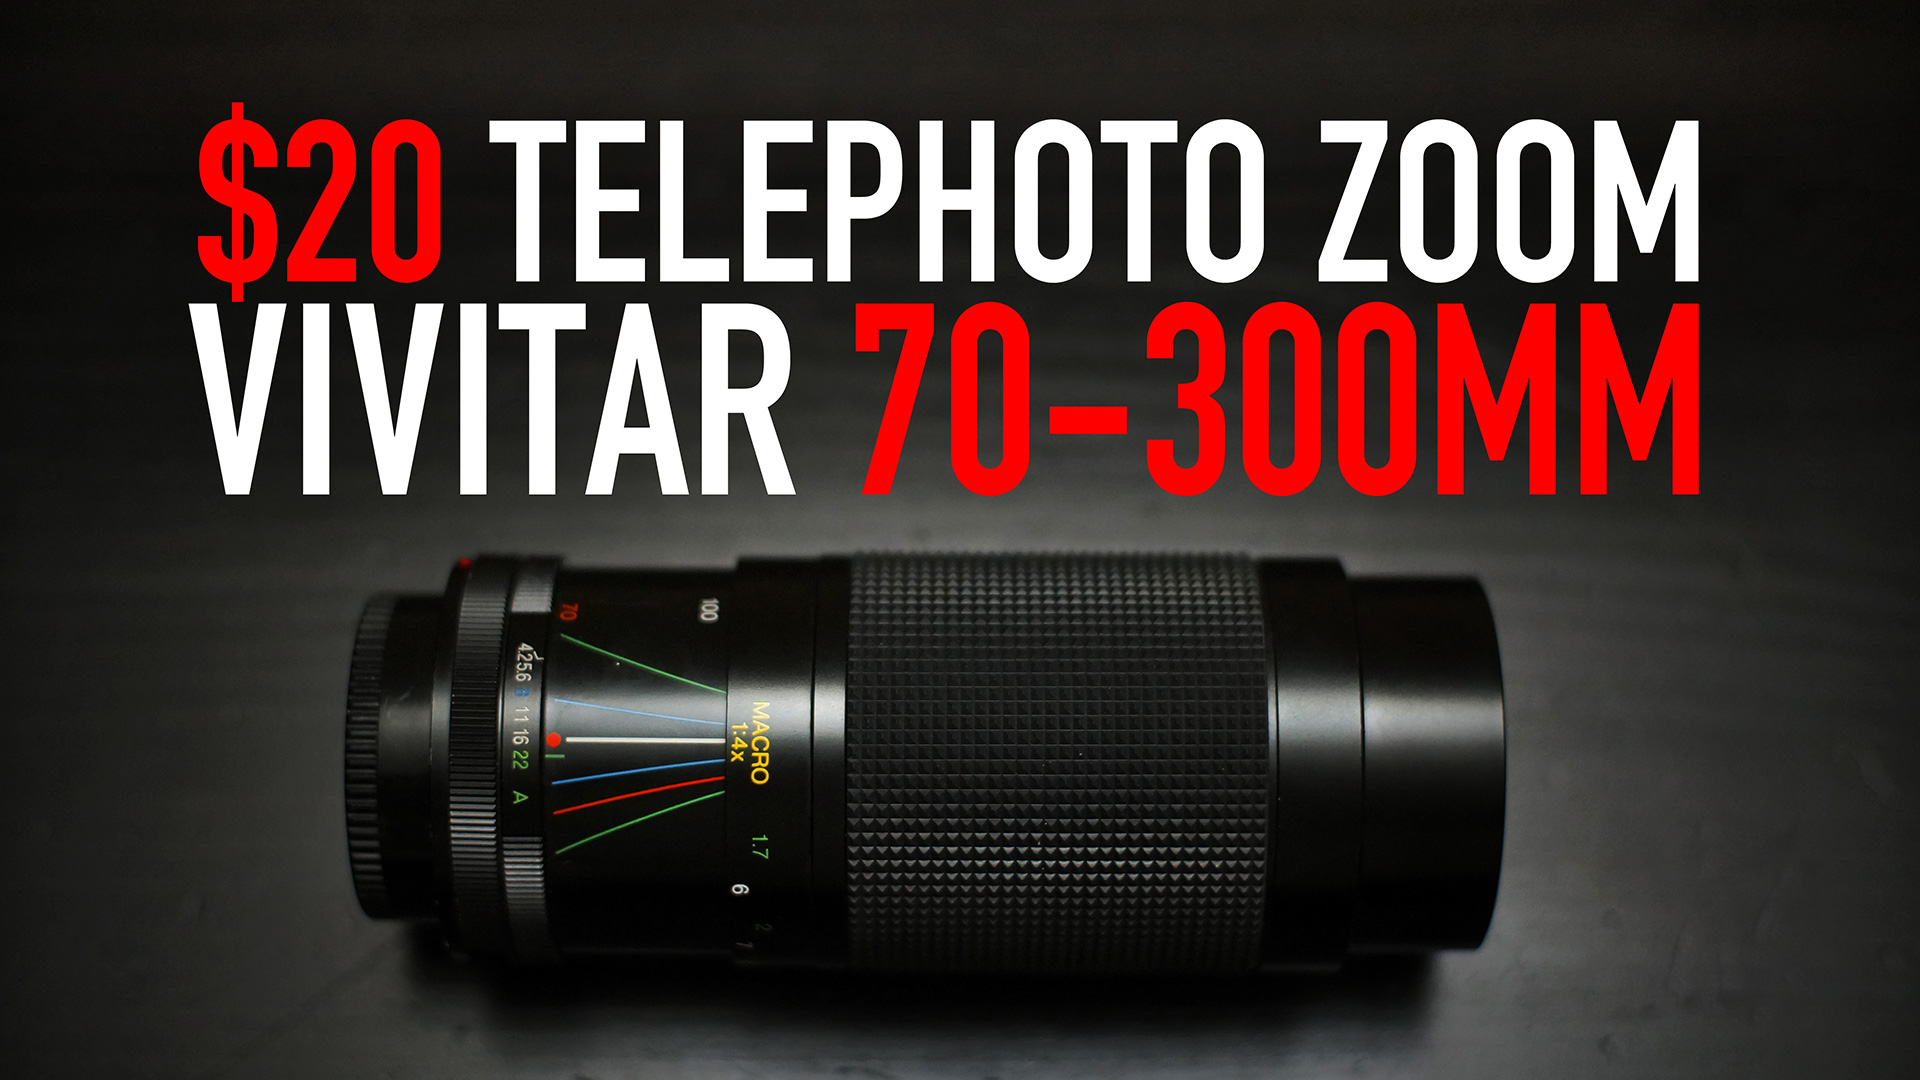 20$ Telephoto Zoom | Vivitar 70-300mm Review